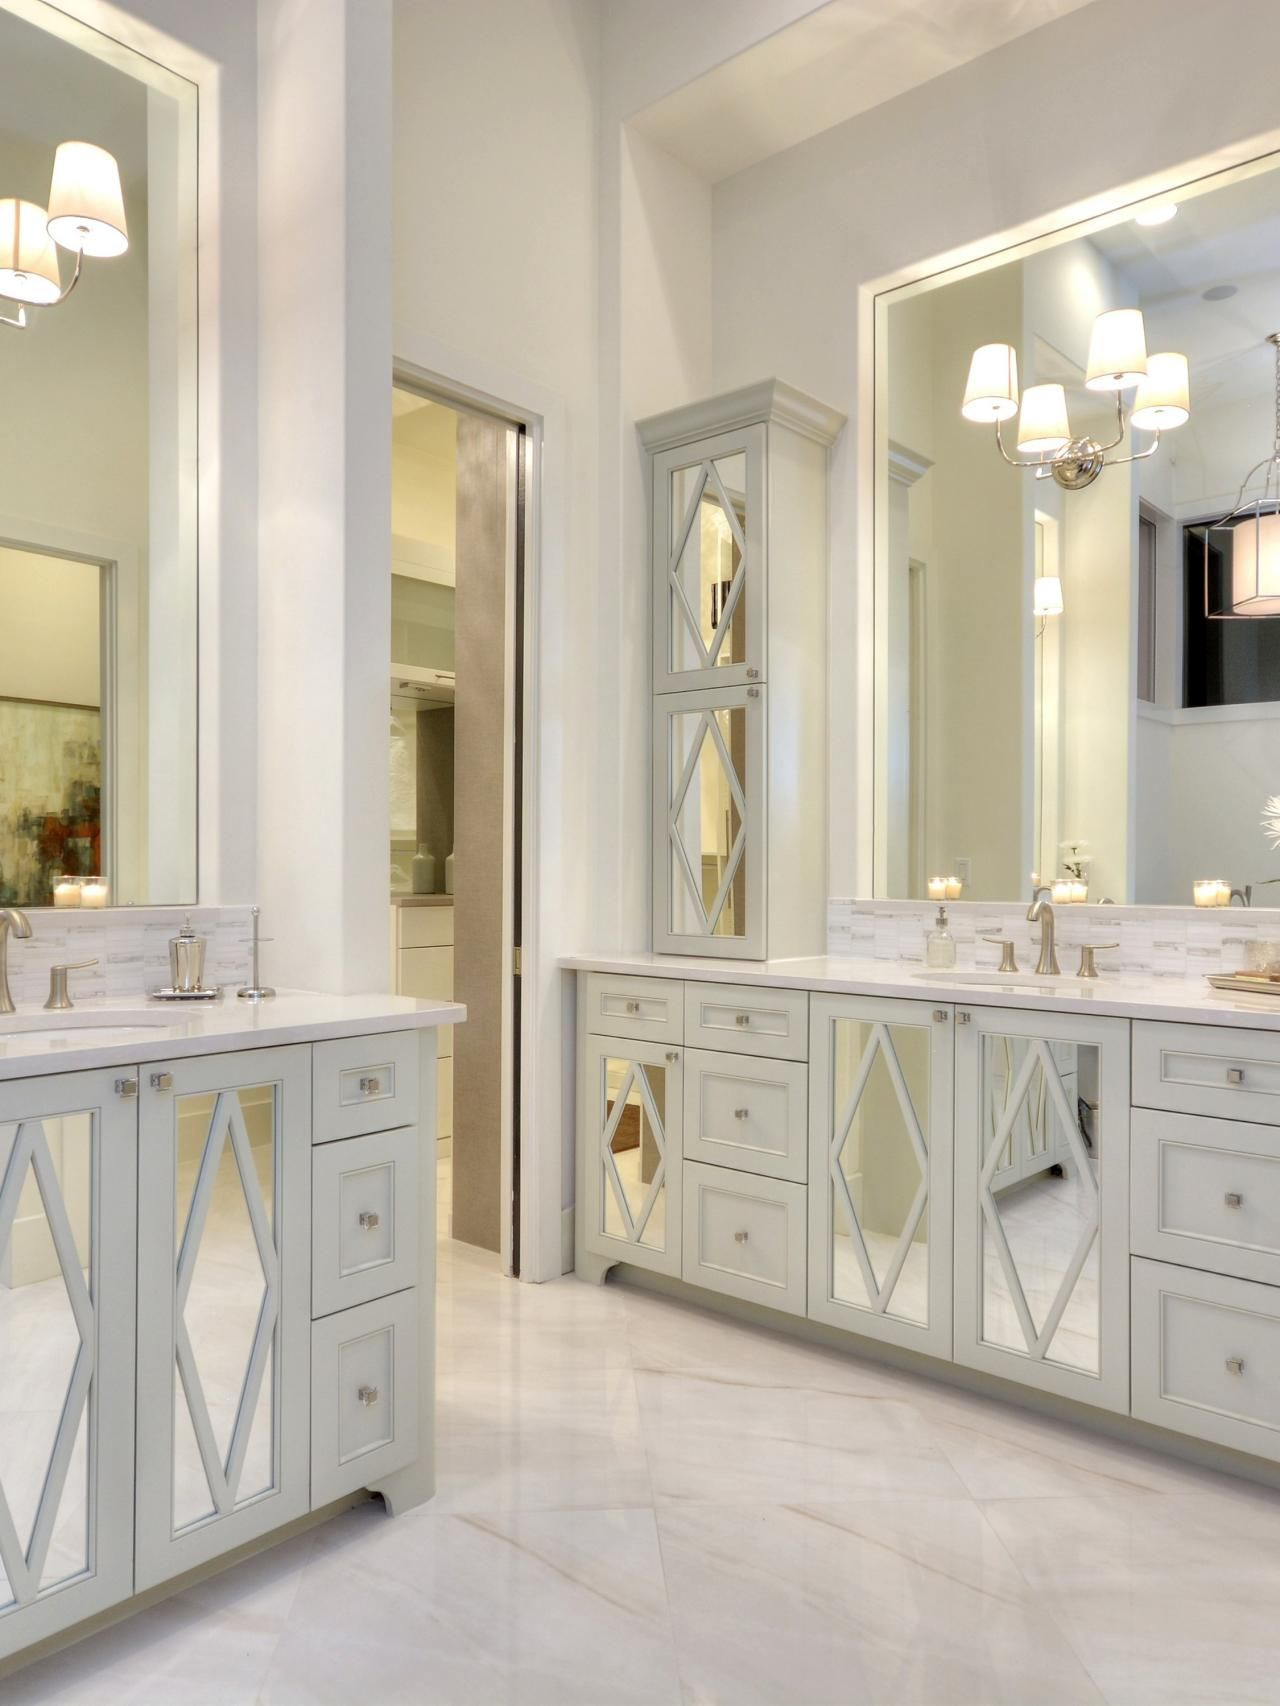 Mirrored Cabinet Doors Best Of Mirrored Cabinet Doors Image by Maria Barkmeier On Ideas for